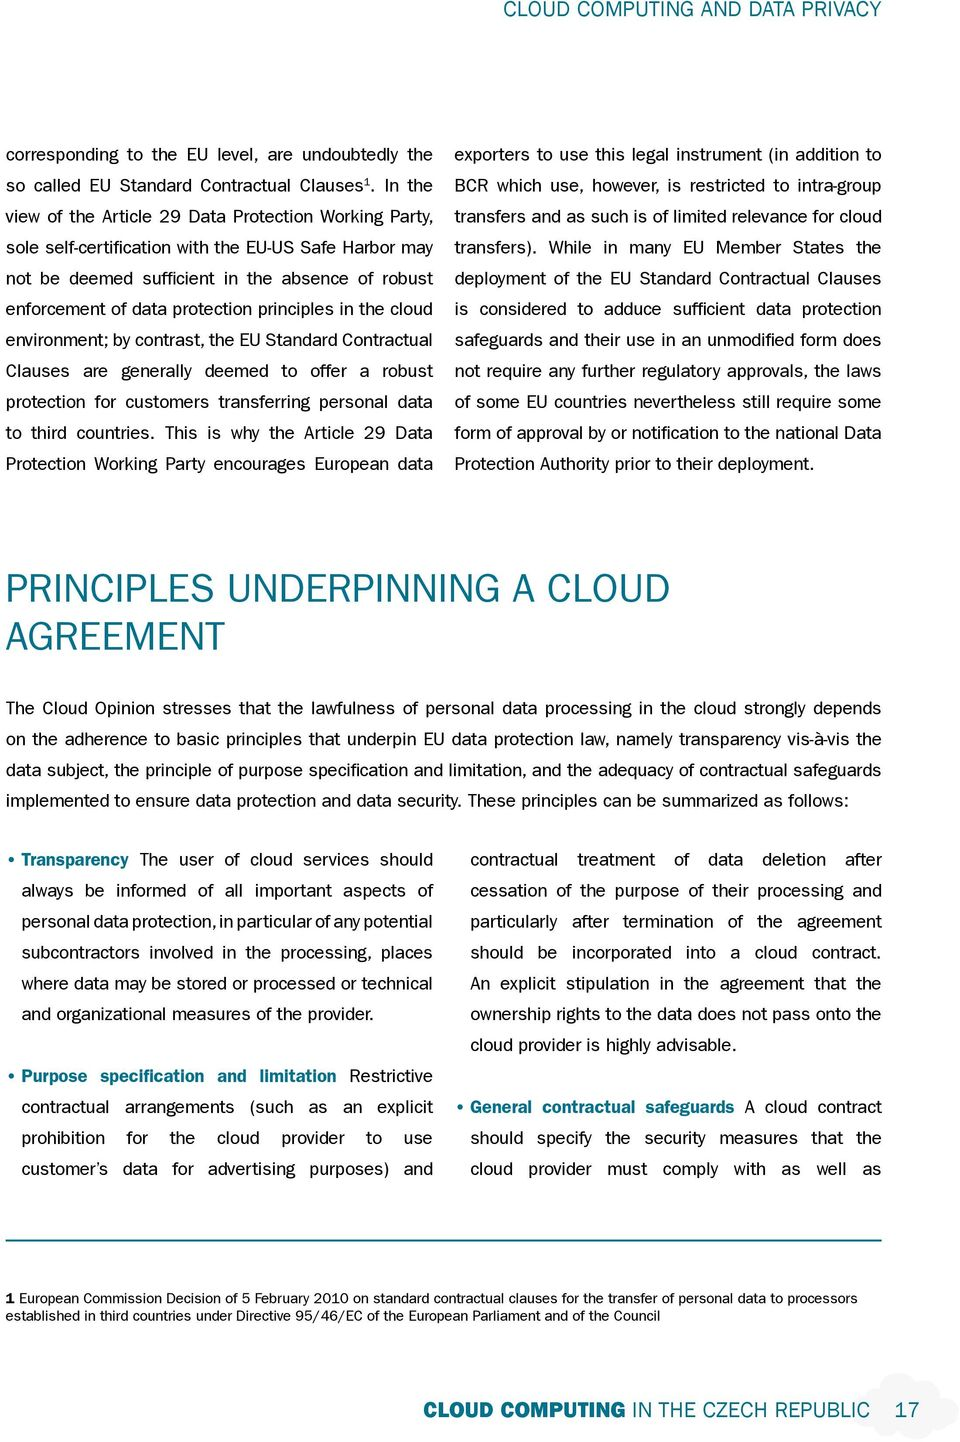 principles in the cloud environment; by contrast, the EU Standard Contractual Clauses are generally deemed to offer a robust protection for customers transferring personal data to third countries.